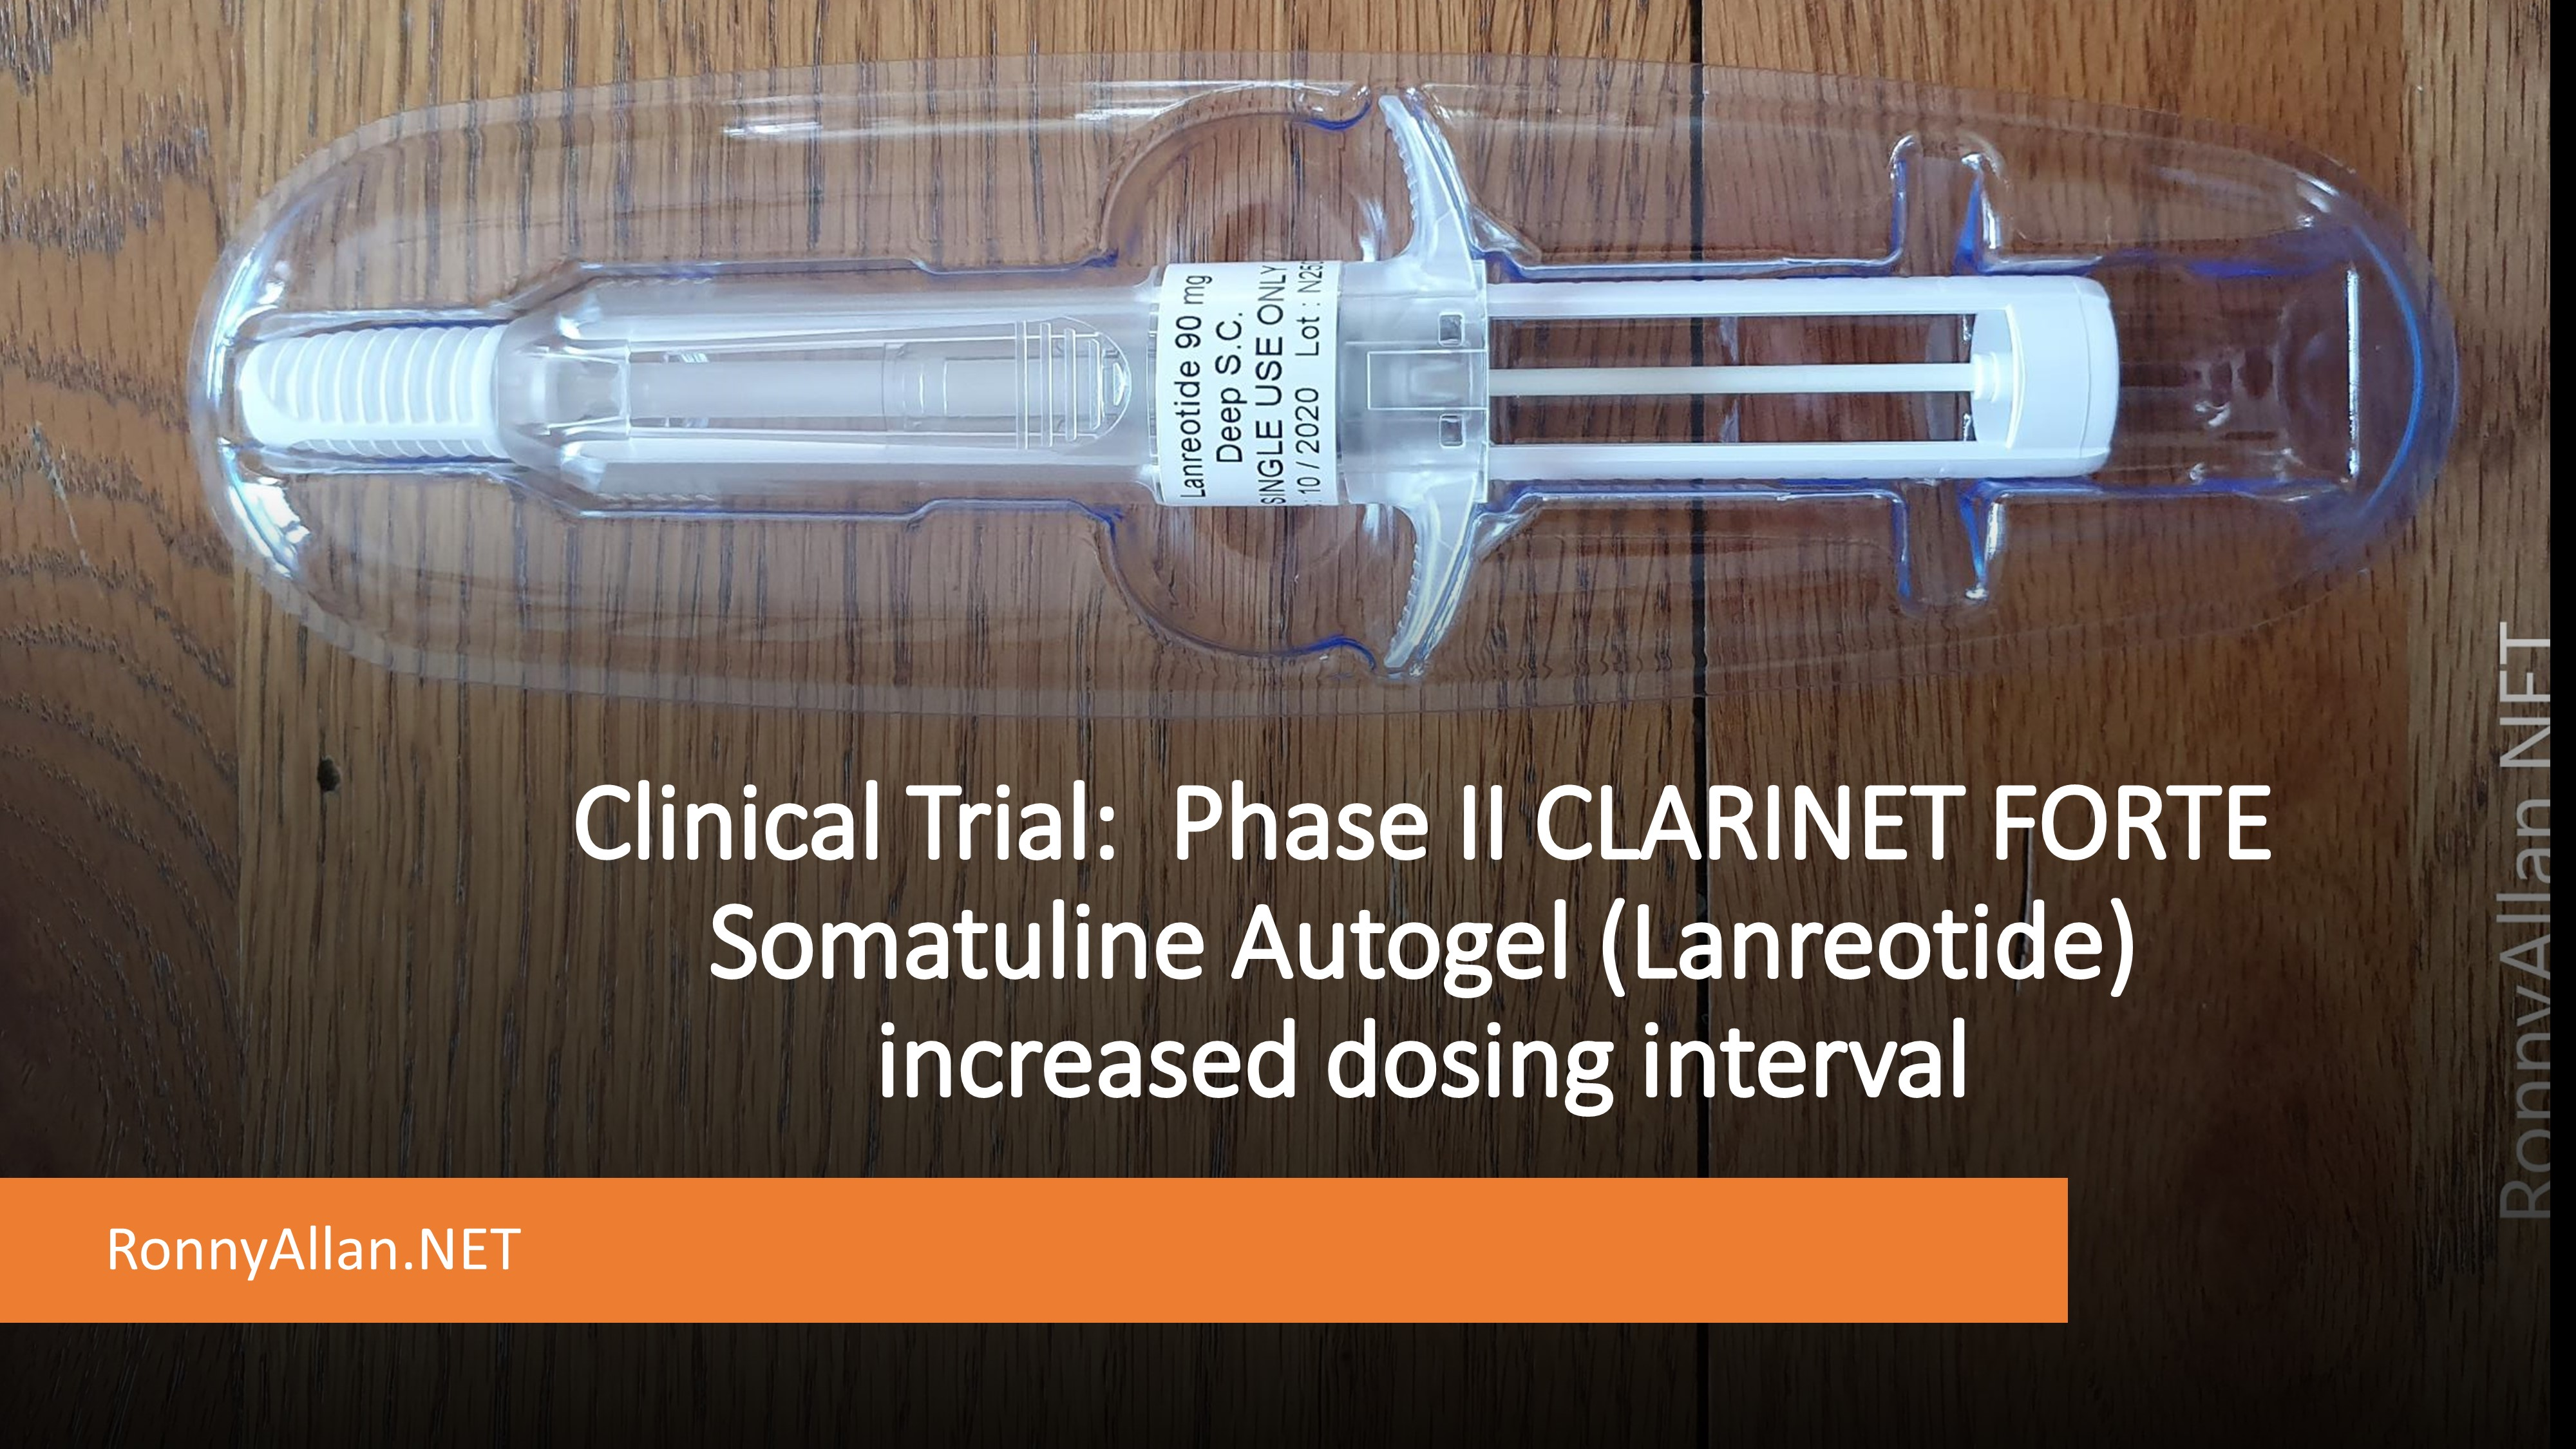 Clinical Trial:  Phase II CLARINET FORTE Somatuline Autogel (Lanreotide) increased dosing interval